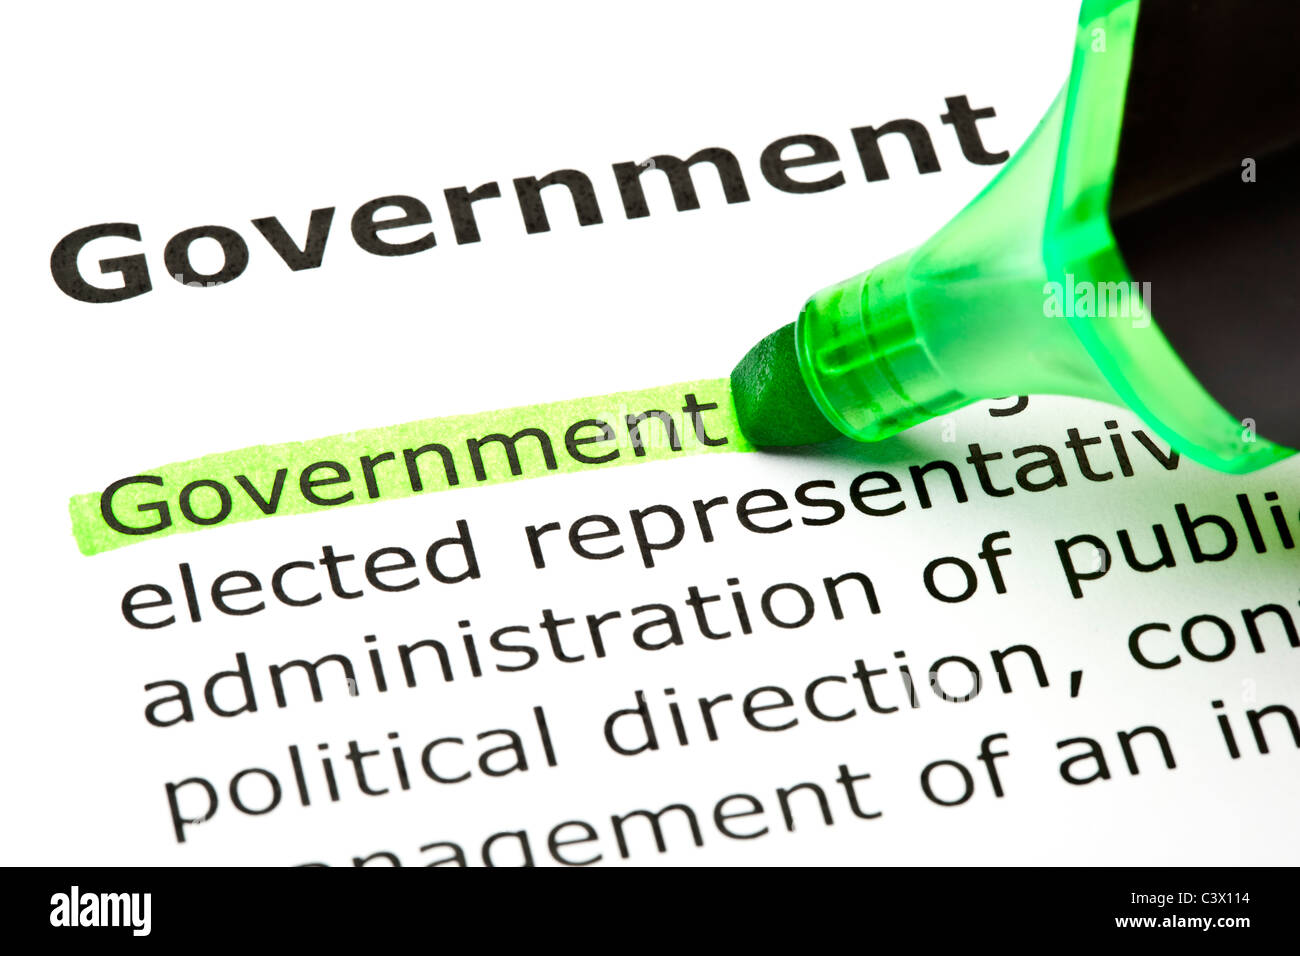 The word 'Government' highlighted in green with felt tip pen - Stock Image